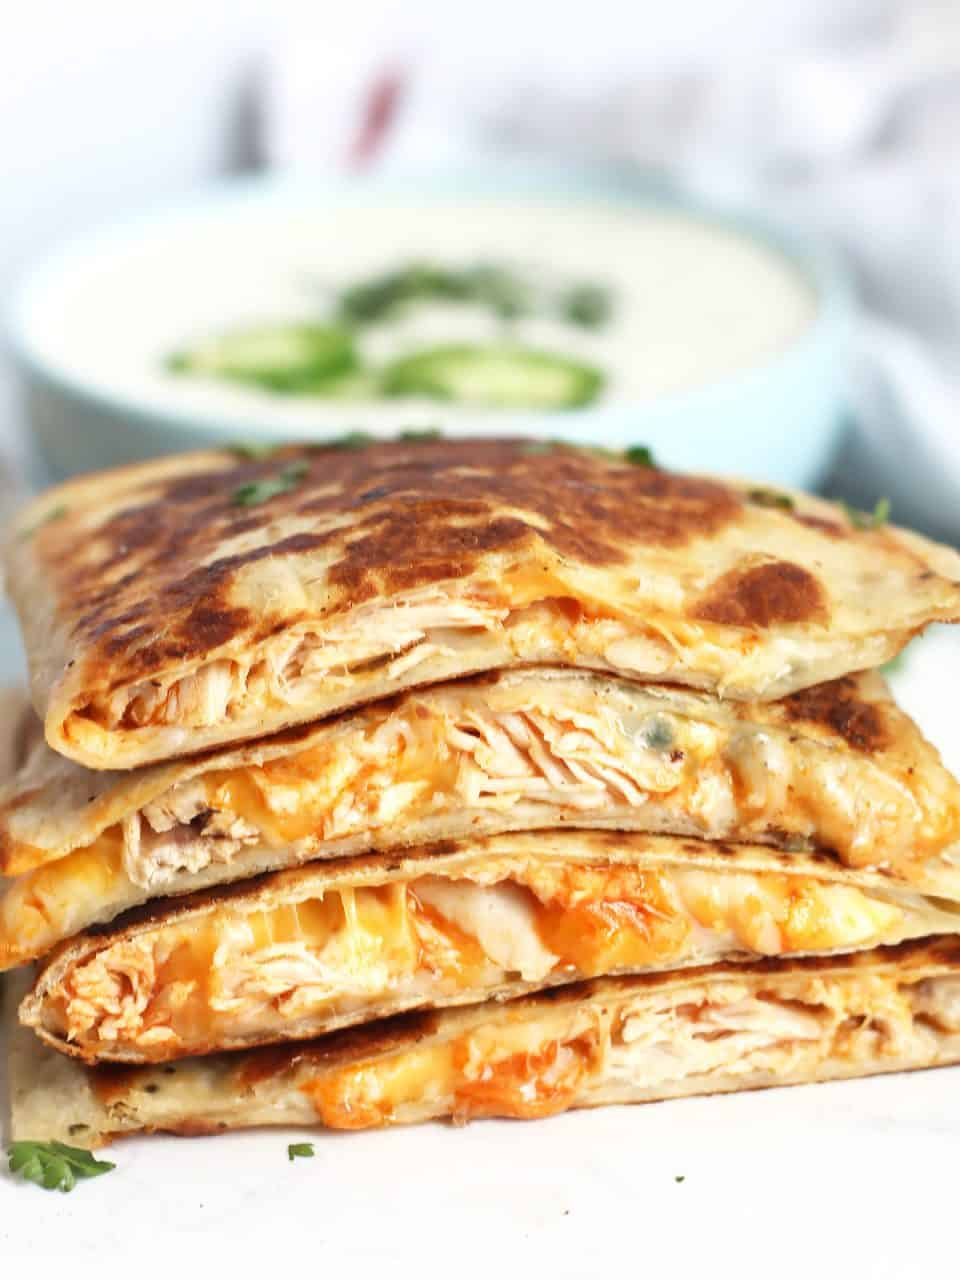 Buffalo chicken quesadillas stacked on top of each other in front of a bowl of sour cream dip.